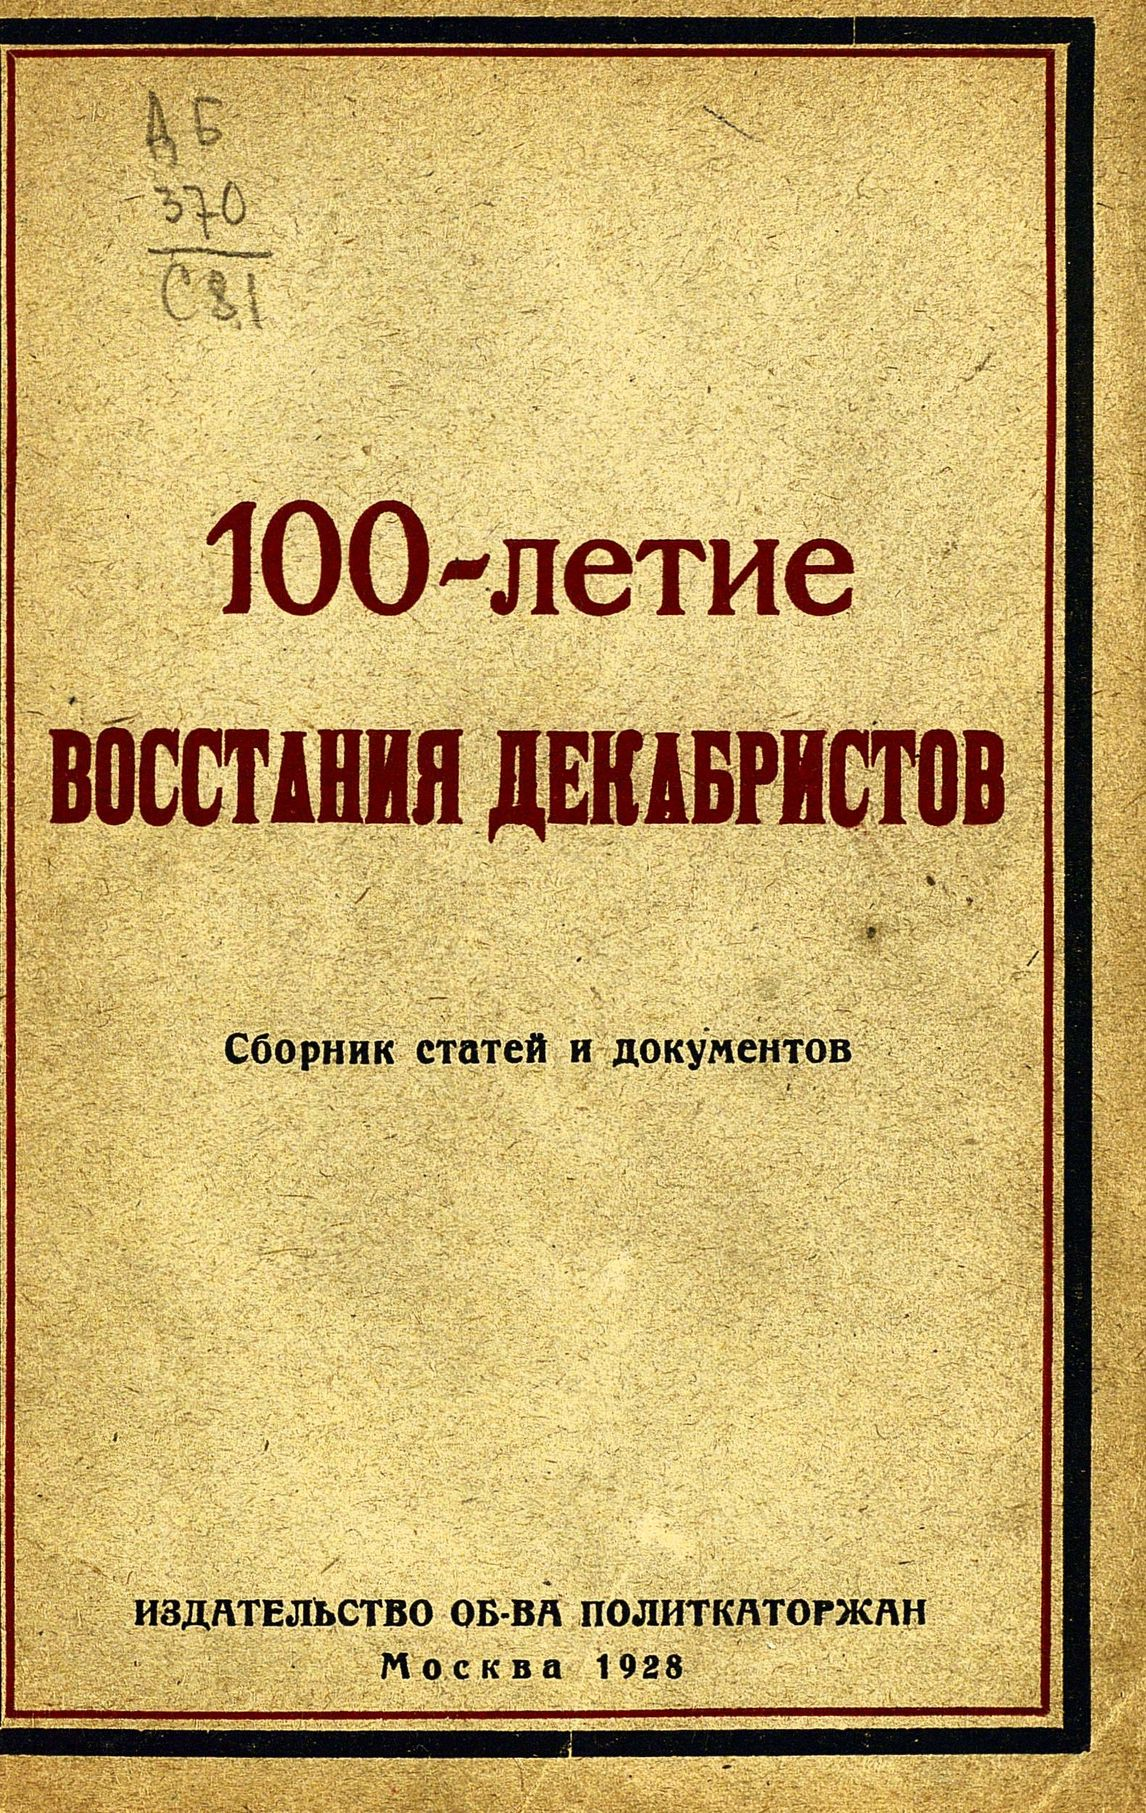 http://elib.shpl.ru/pages/543249/zooms/7